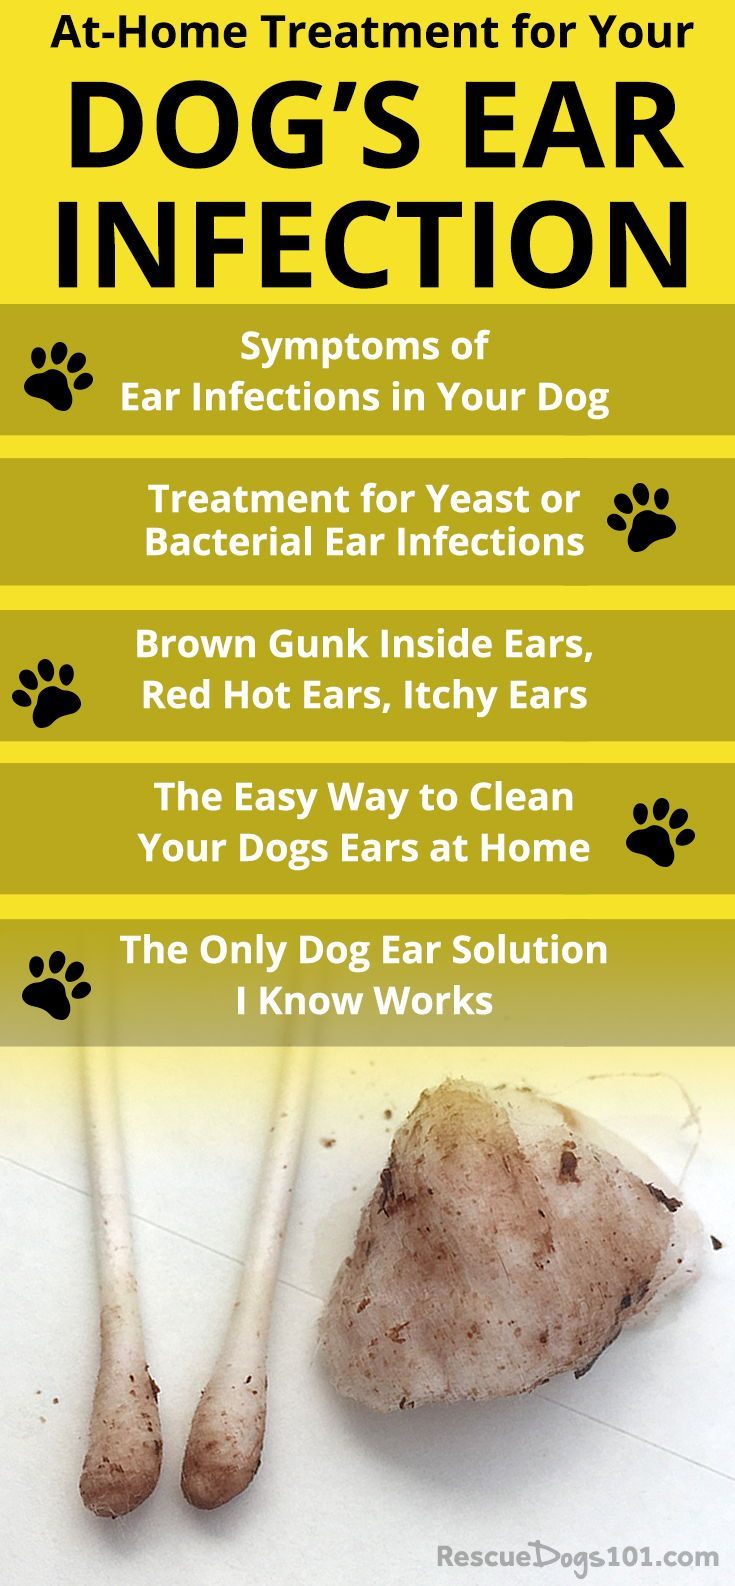 The Secret To Getting Rid Of Ear Infections In Your Dog At Home